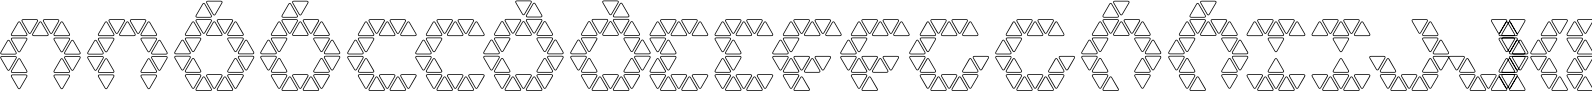 C13 HEX Round Outline